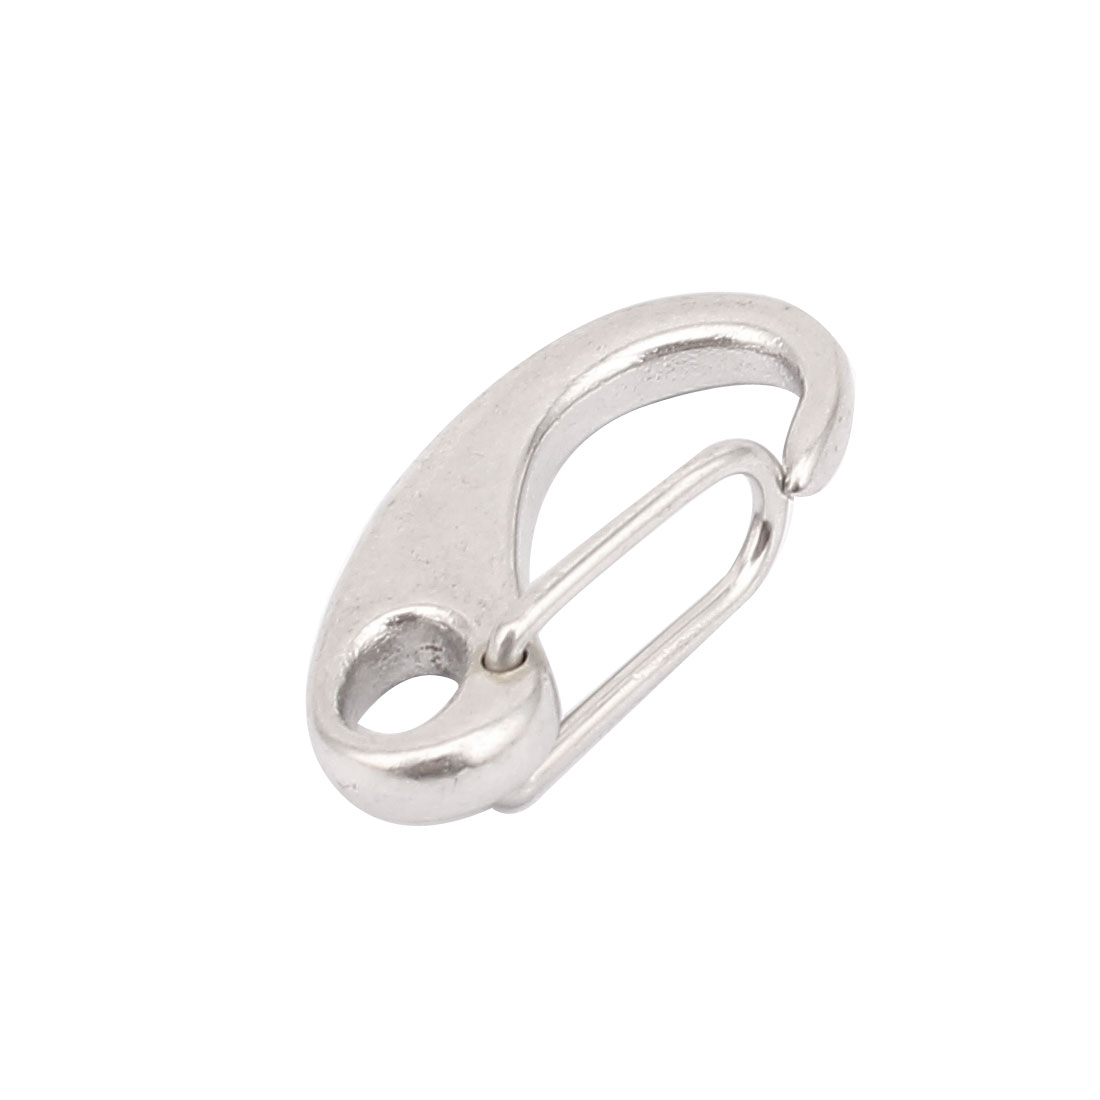 Stainless steel egg Quick Link Carabiner Snap Hook Clip 30mm Lenght